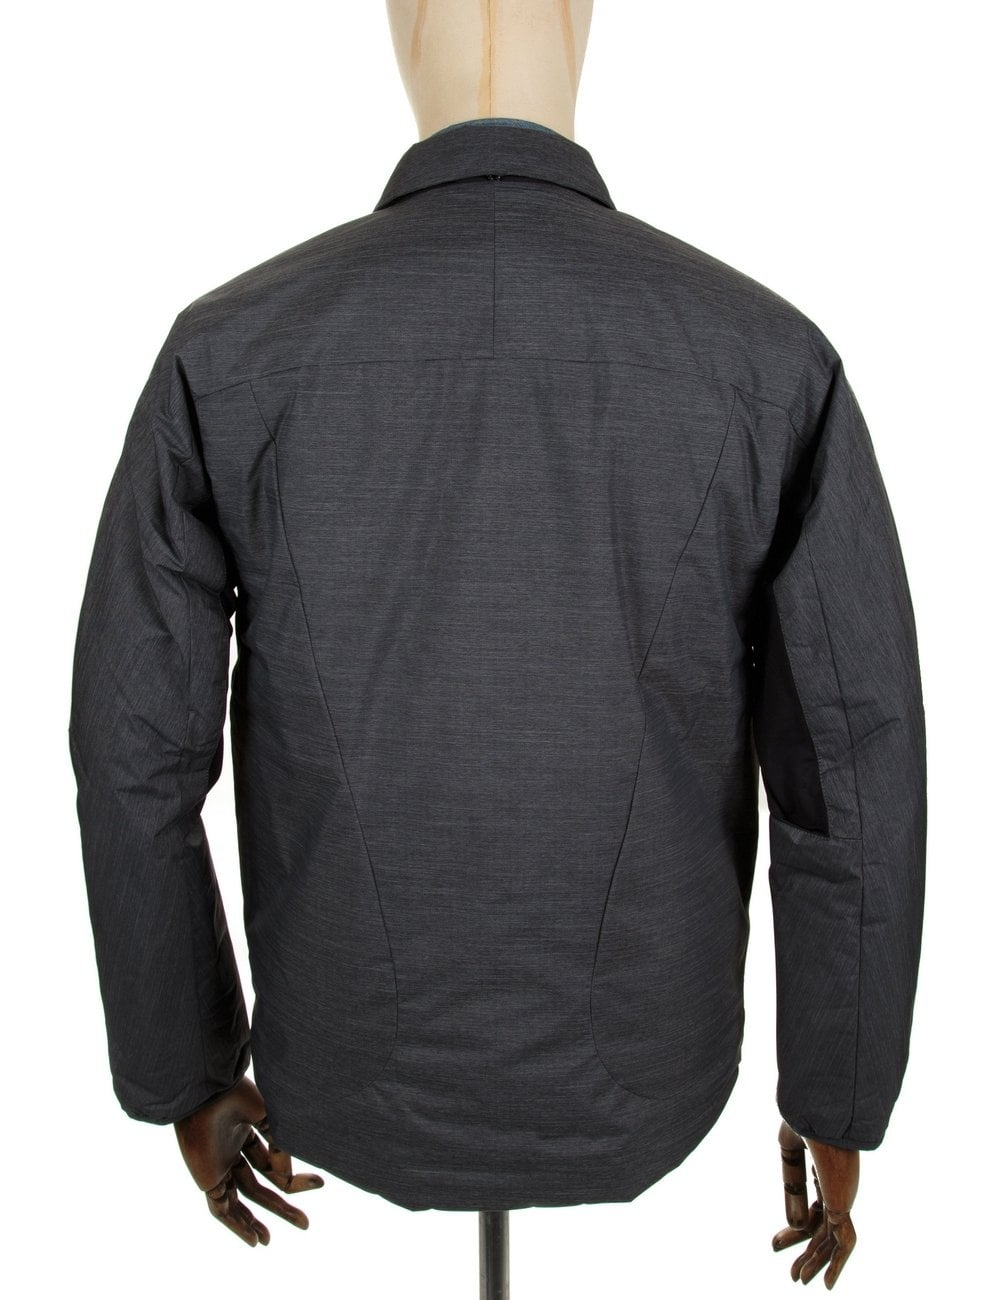 Commuter Clothing | Levis Commuter Jacket | Commuter Trucker Jacket